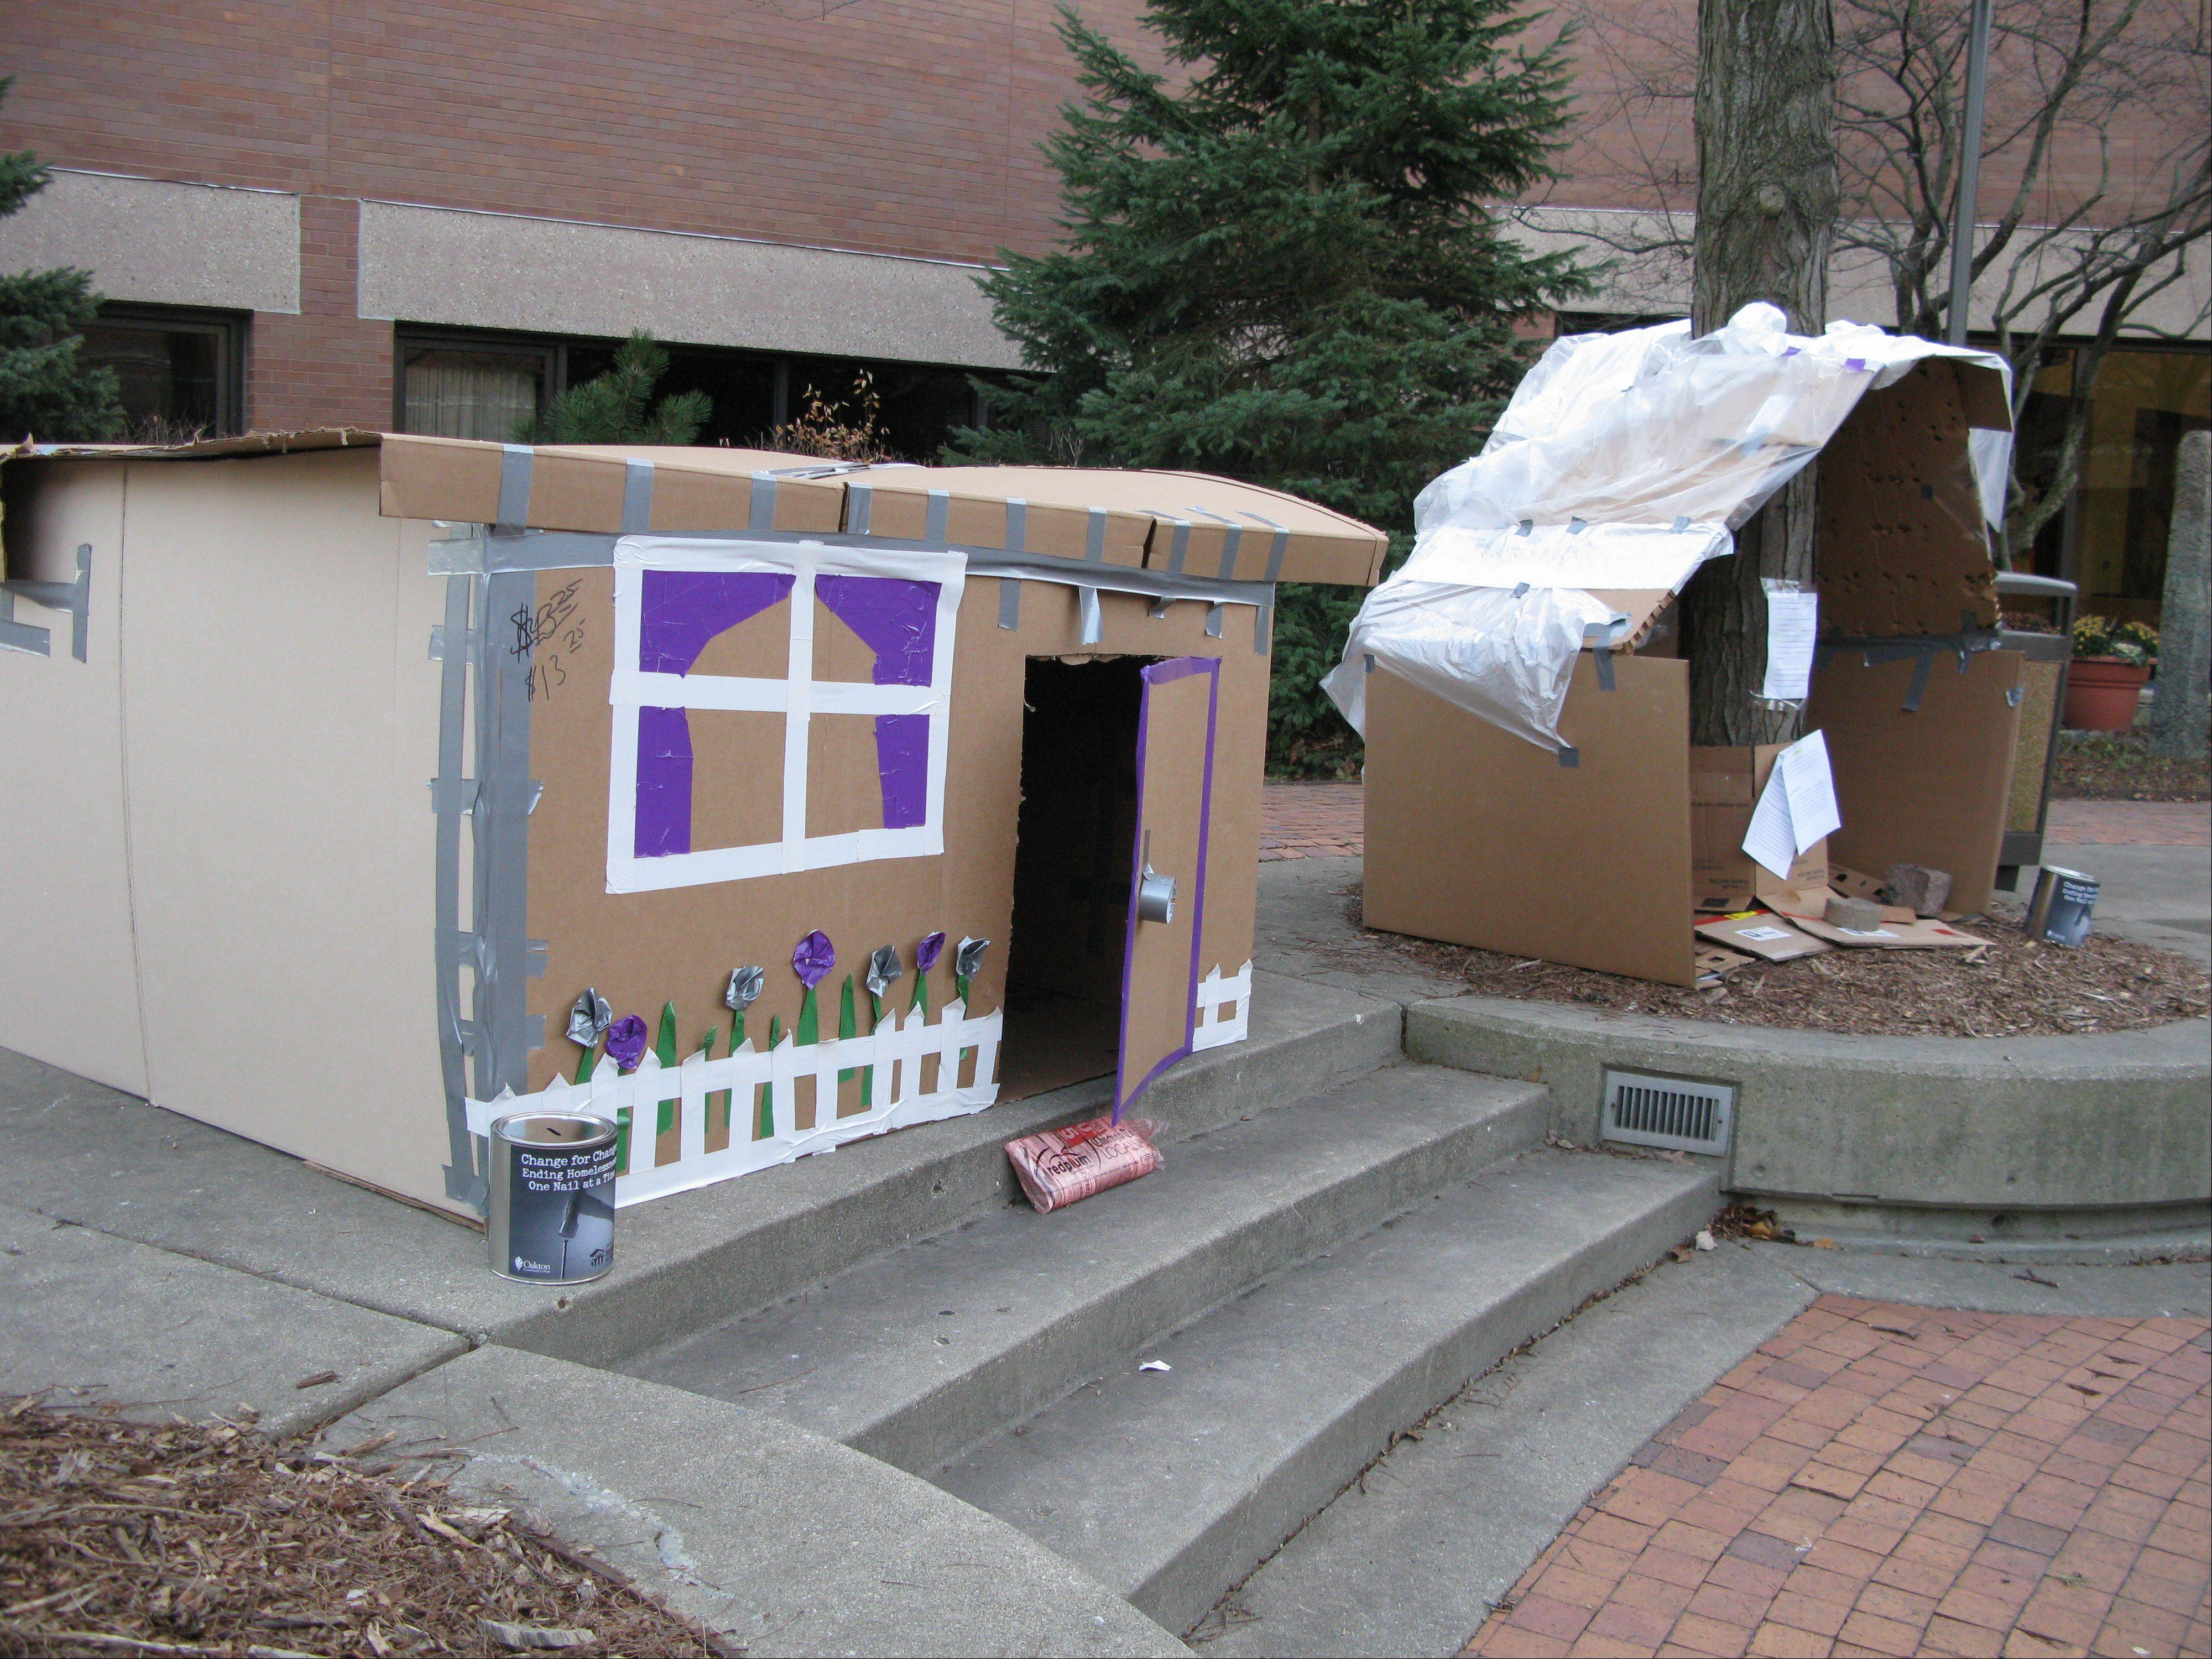 Roughly 27 Oakton Community College students stayed through the night Tuesday in shanties they built out of discarded cardboard boxes in the courtyard of the Des Plaines campus. The project was sponsored by the college's Habitat for Humanity Chapter to raise awareness about the plight of the homeless. The shanties will stay up all week as a reminder to other students.